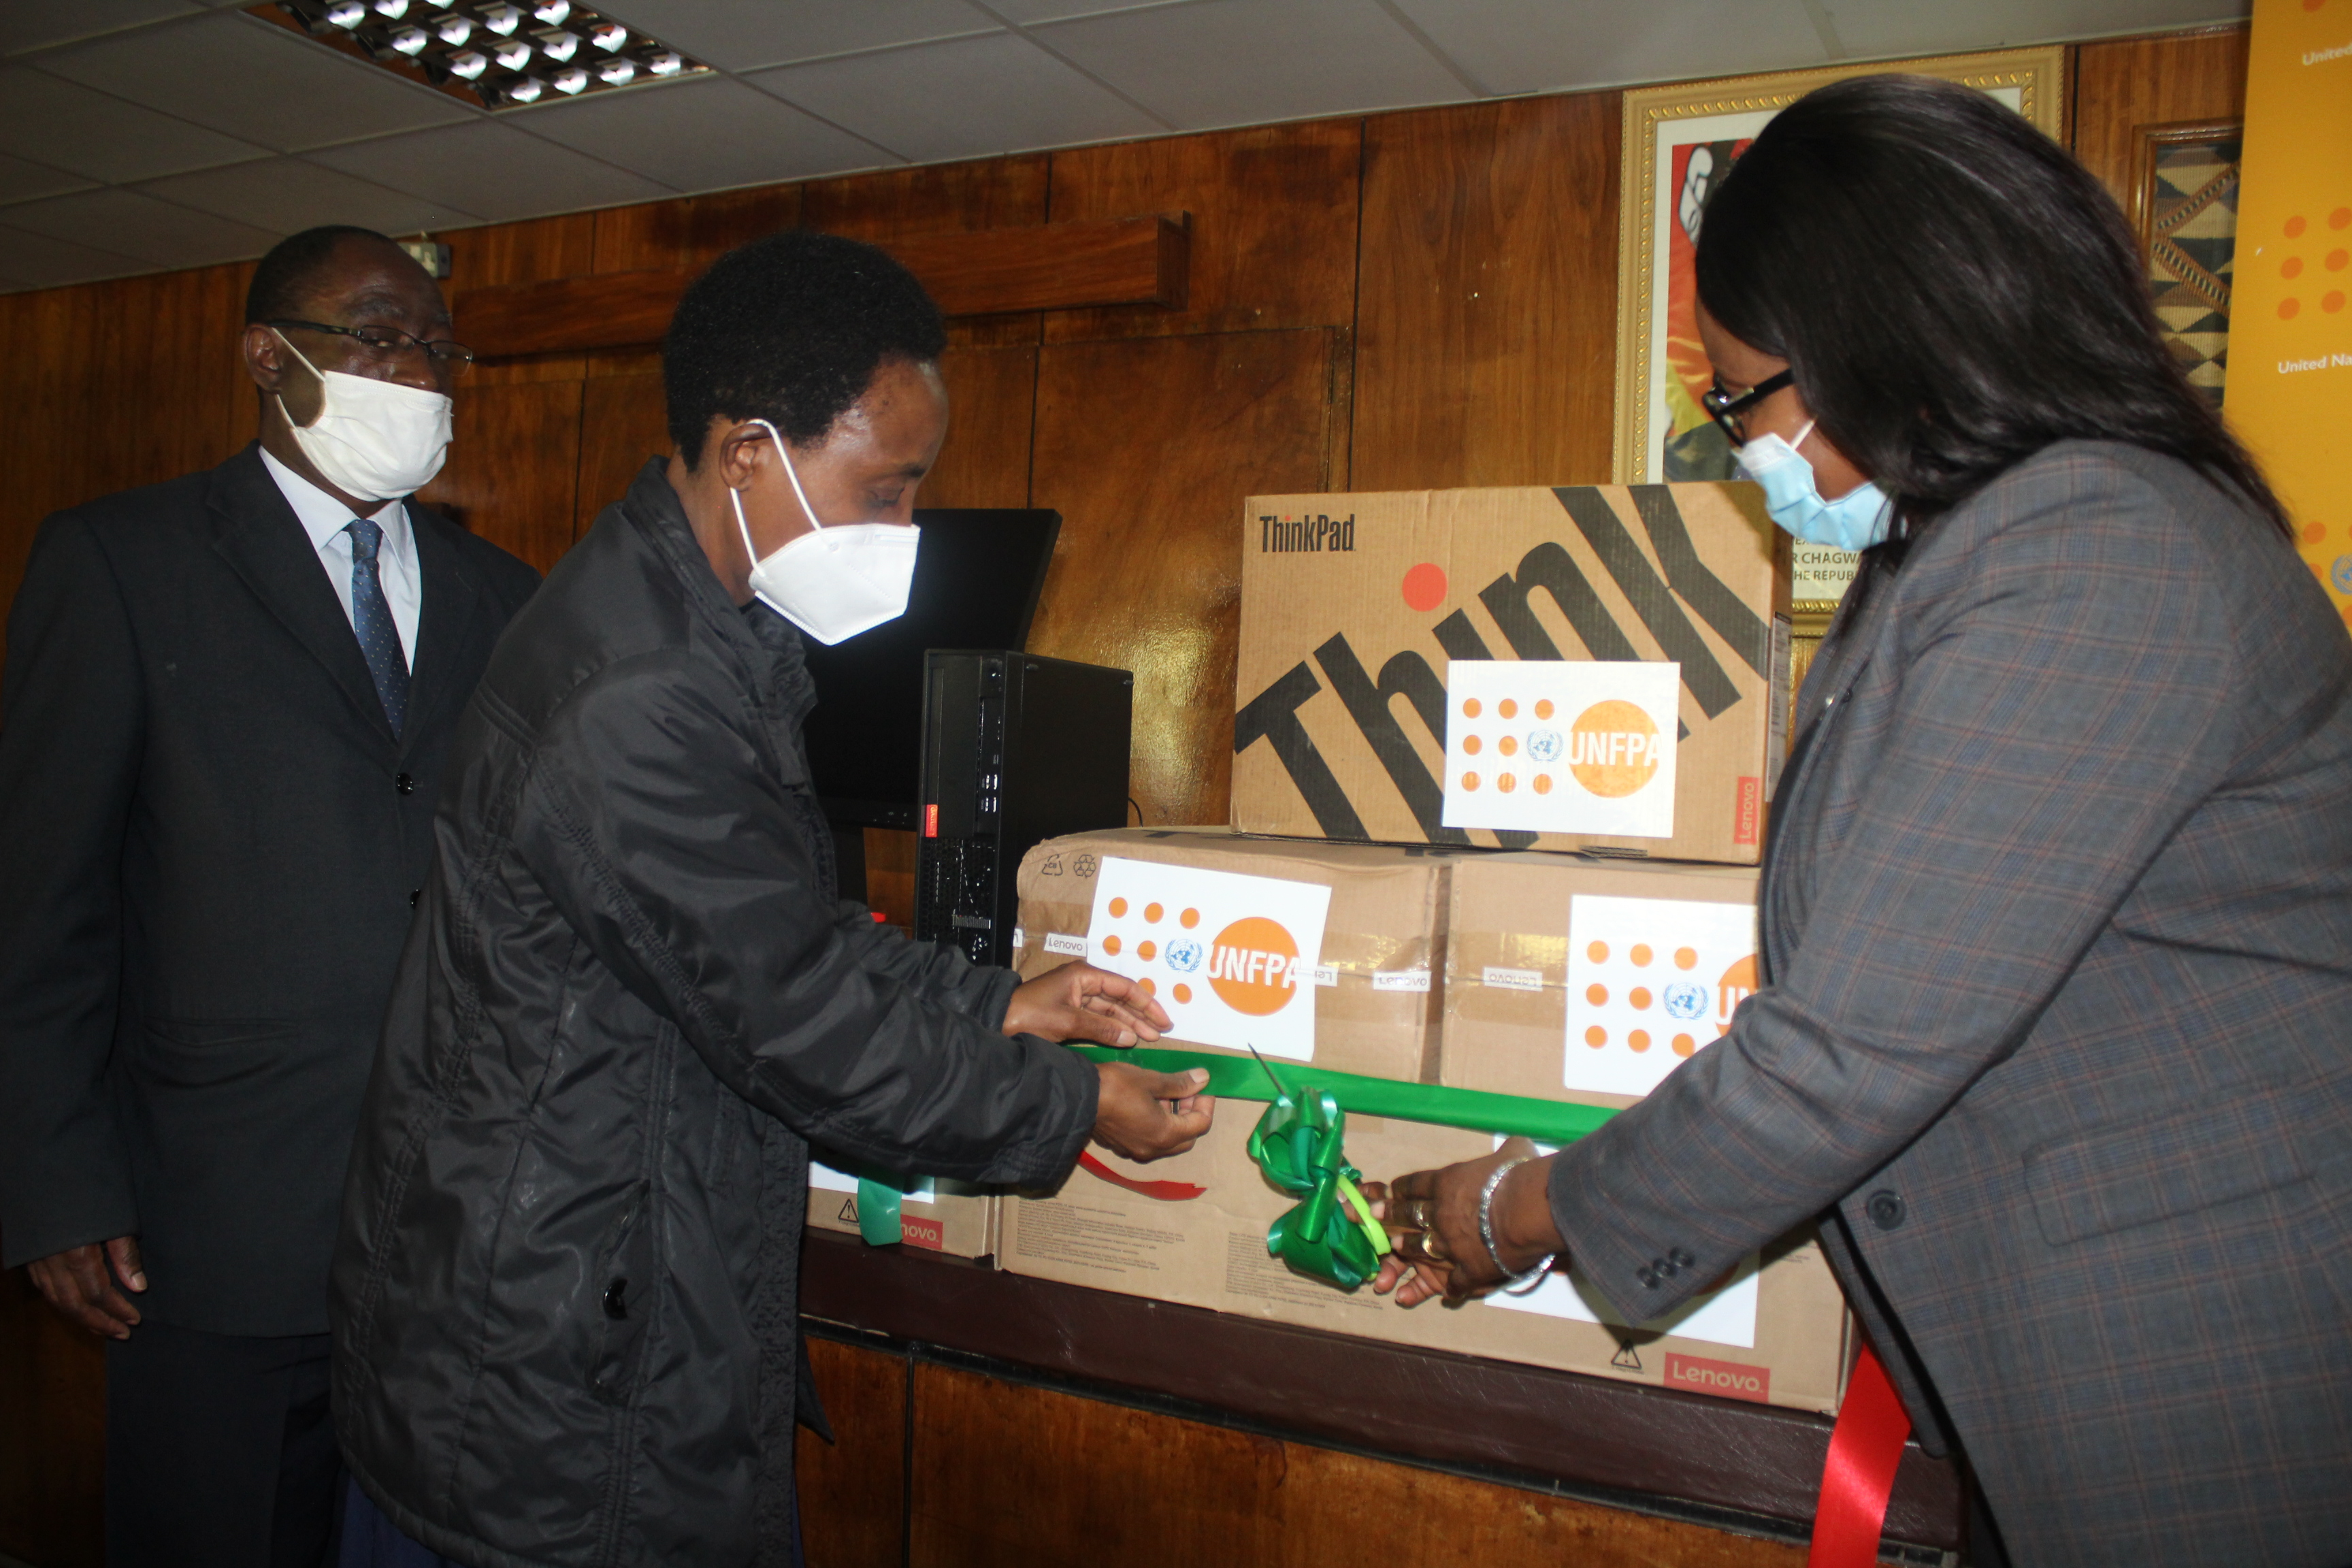 UNFPA Zambia Representative (R) handing over high-tech computer equipment to the University if Zambia Assistant Dean, for use at the Center of Excellence for Geograpic Information System(GIS) and Remote Sensing (RS), as part of ongoing support to enhance the generation and use of geospatial information under the GRID3 project